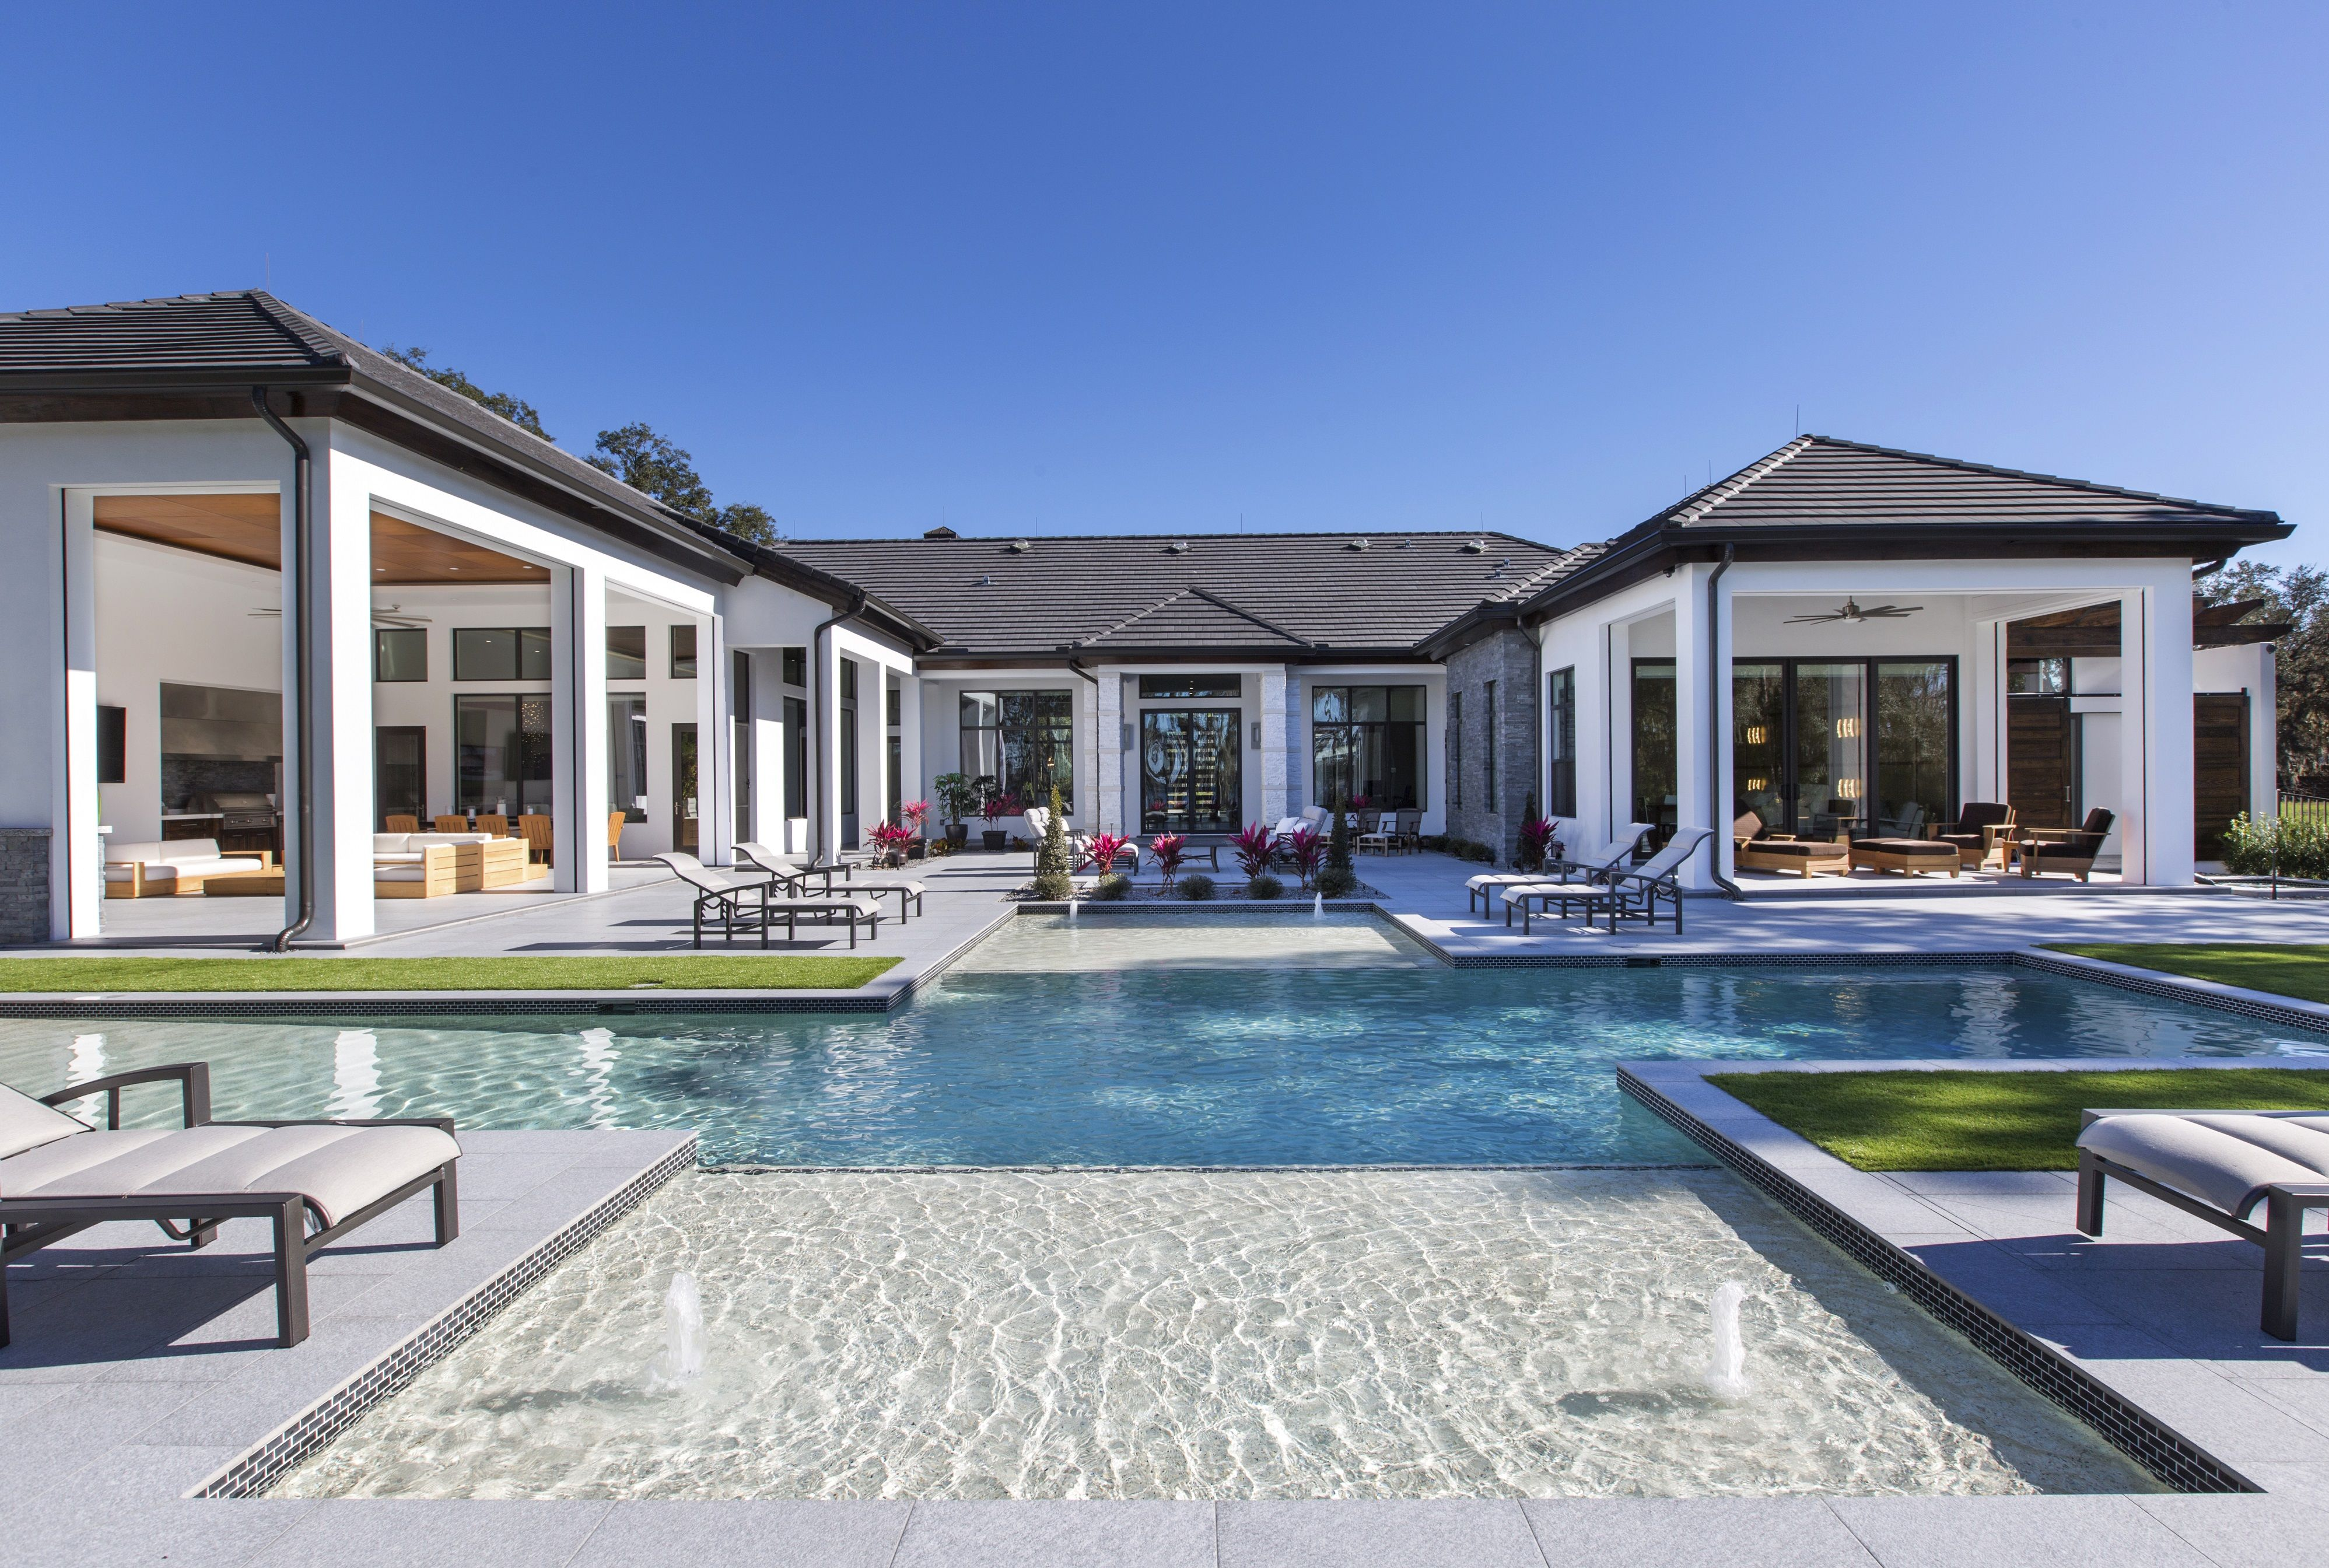 Parfait Modern Pool With Room On Your Back Patio To Host Gatherings Makes